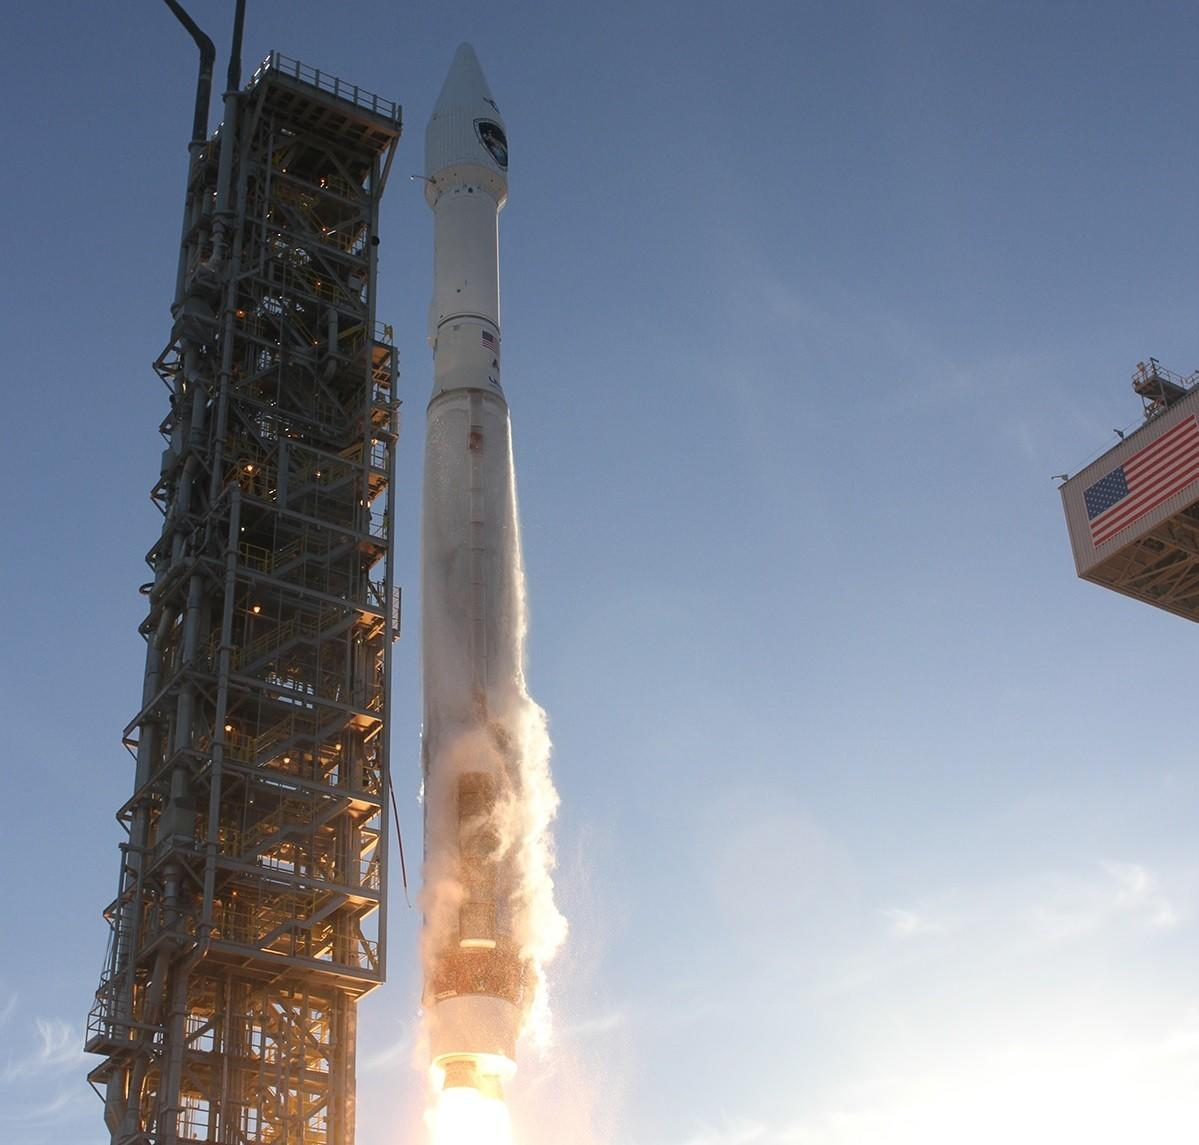 An Atlas V rocket blasts off from Vandenberg Air Force Base, carrying a military weather satellite.